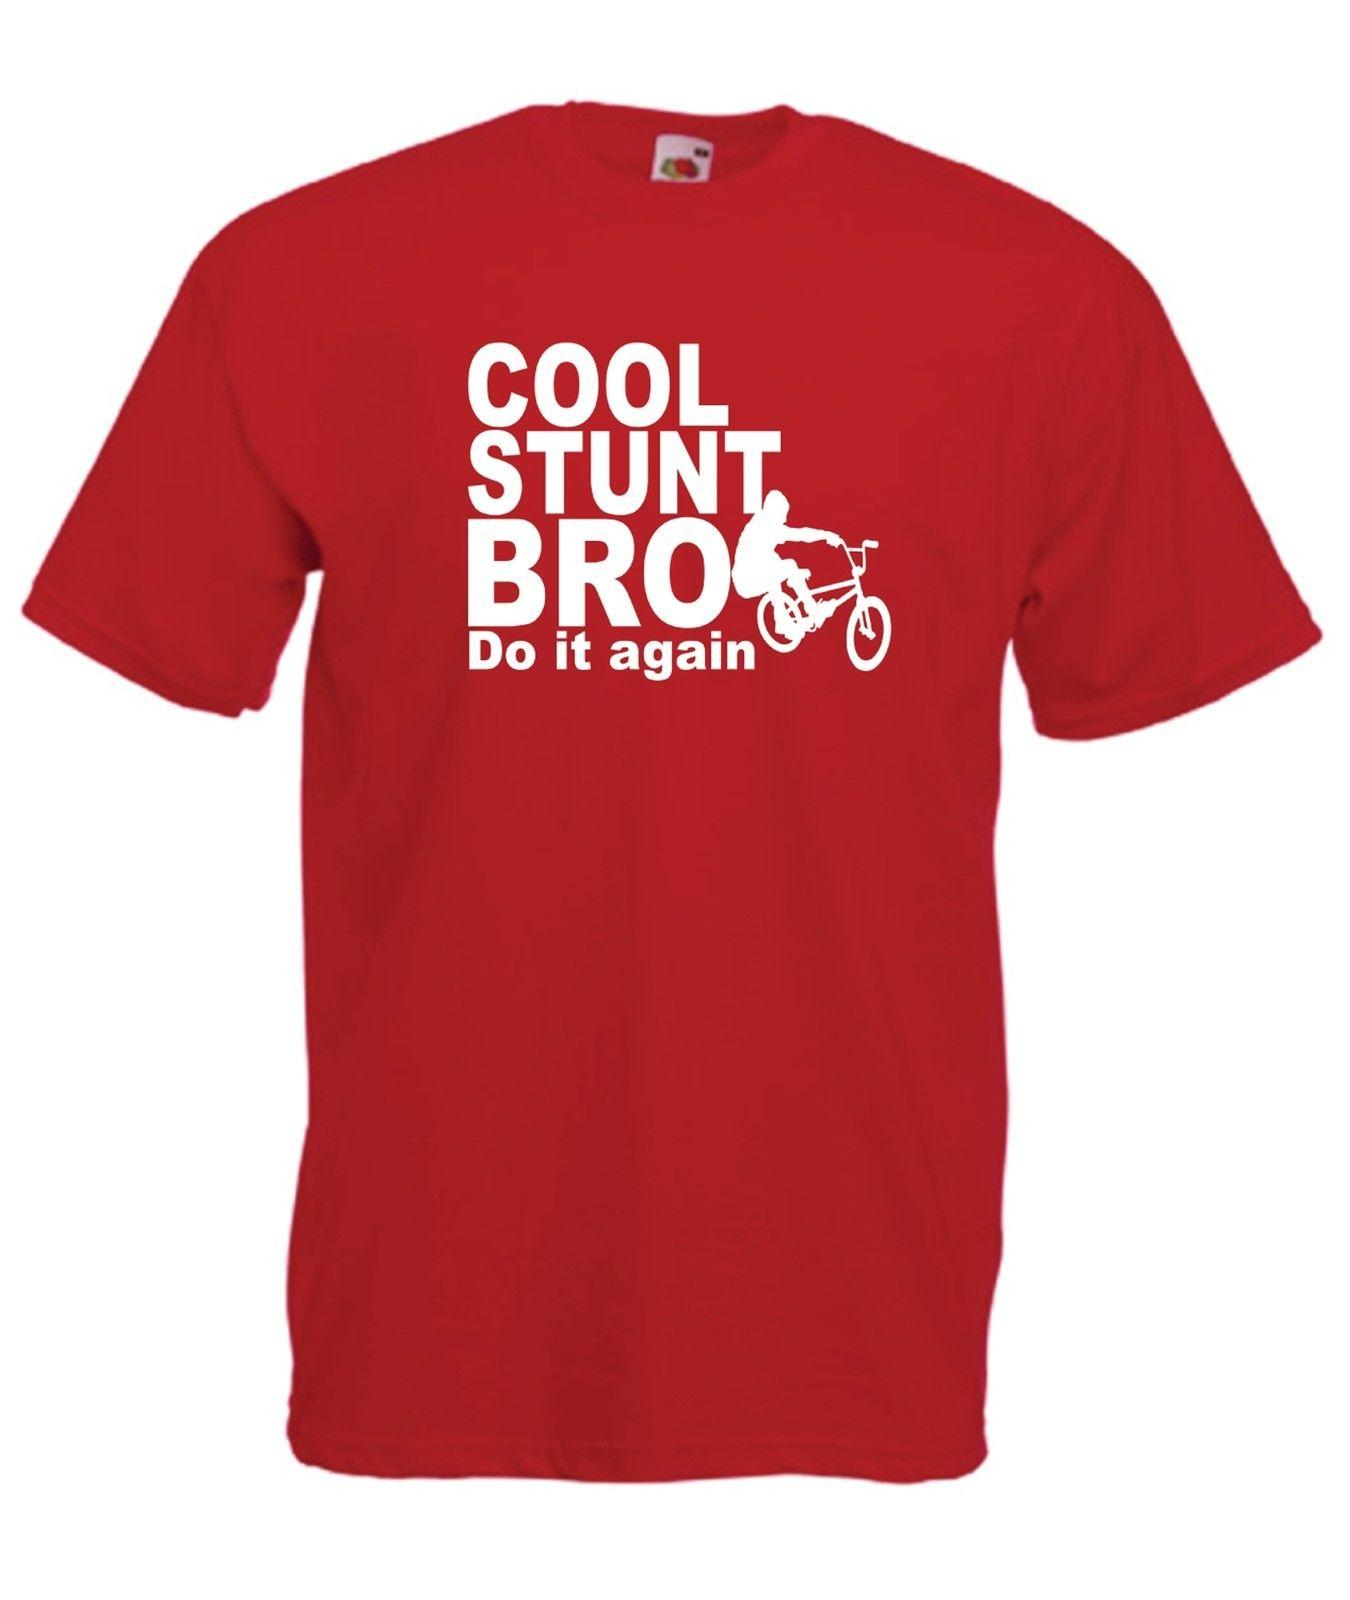 COOL STUNT BRO Bmx Bike Tee Xmas Birthday Gift Idea Mens Womens ADULT TSHIRT TOP Funny Unisex Casual Gag T Shirts With Prints From